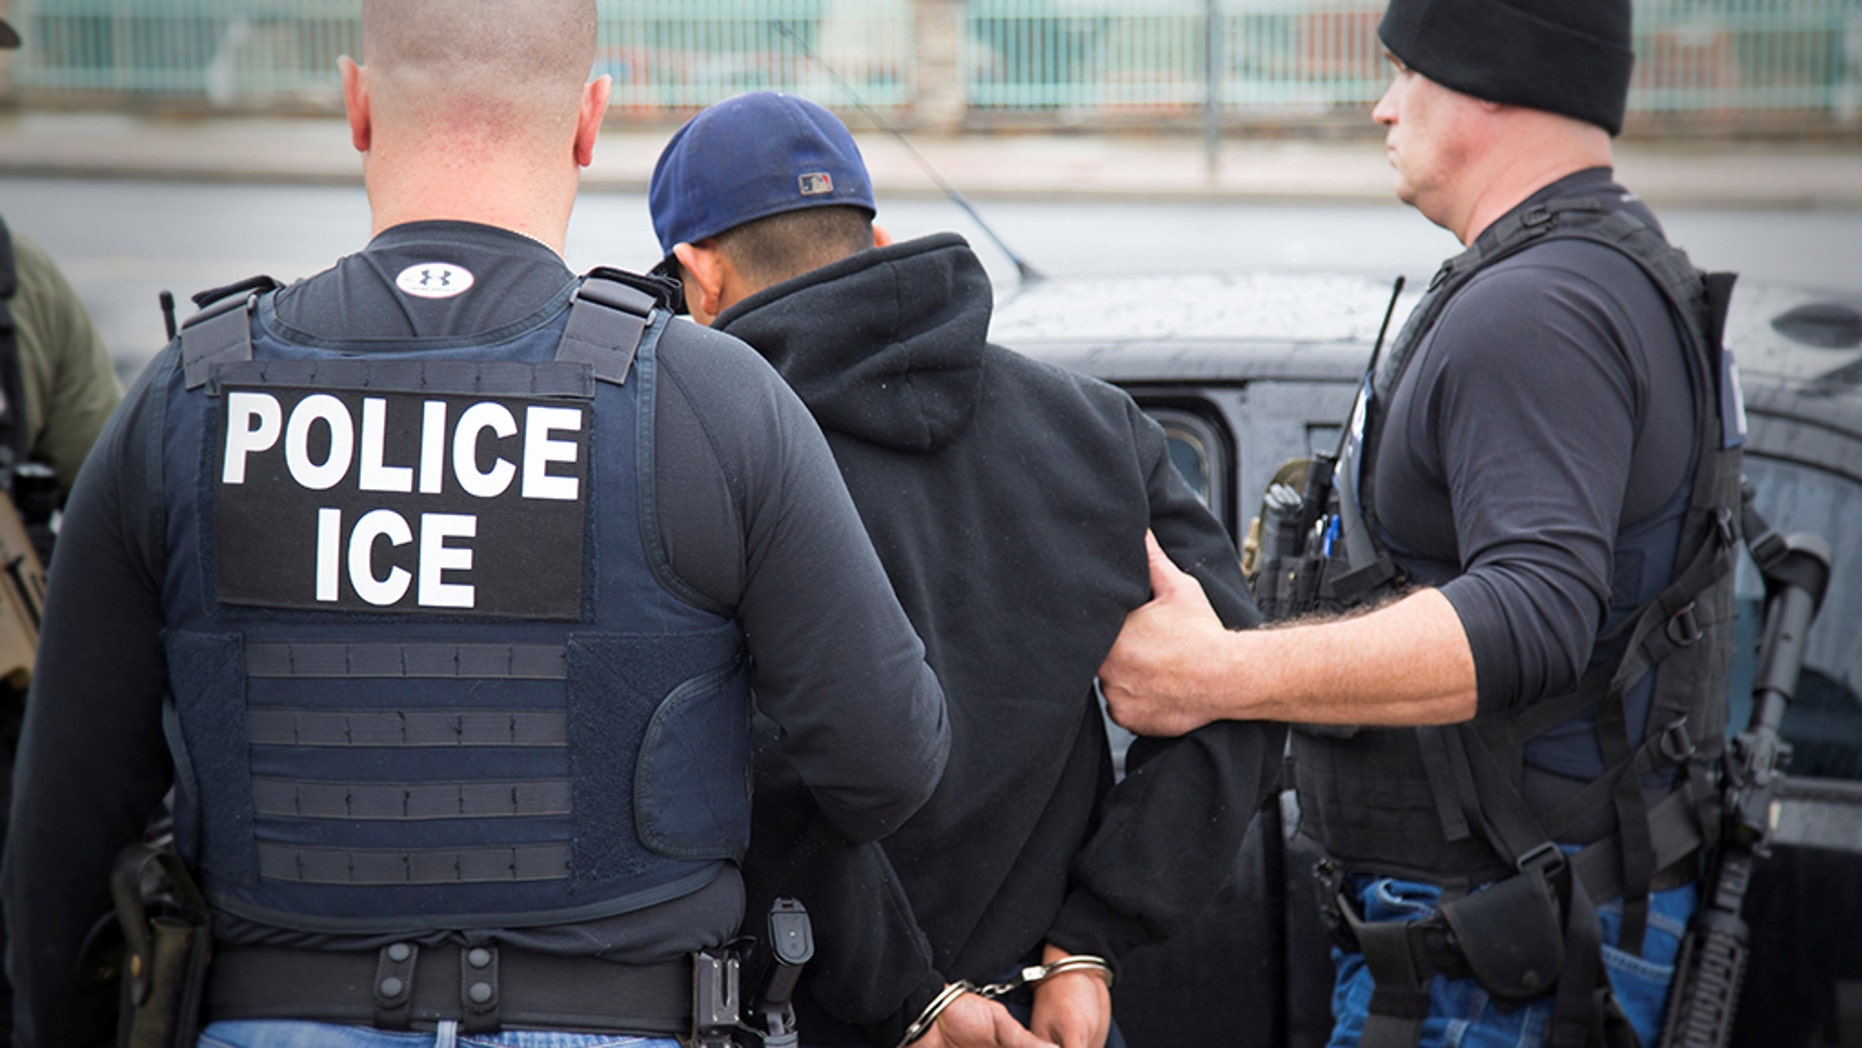 Nearly 100 people were arrested by ICE for a series of crimes, including immigration violations.